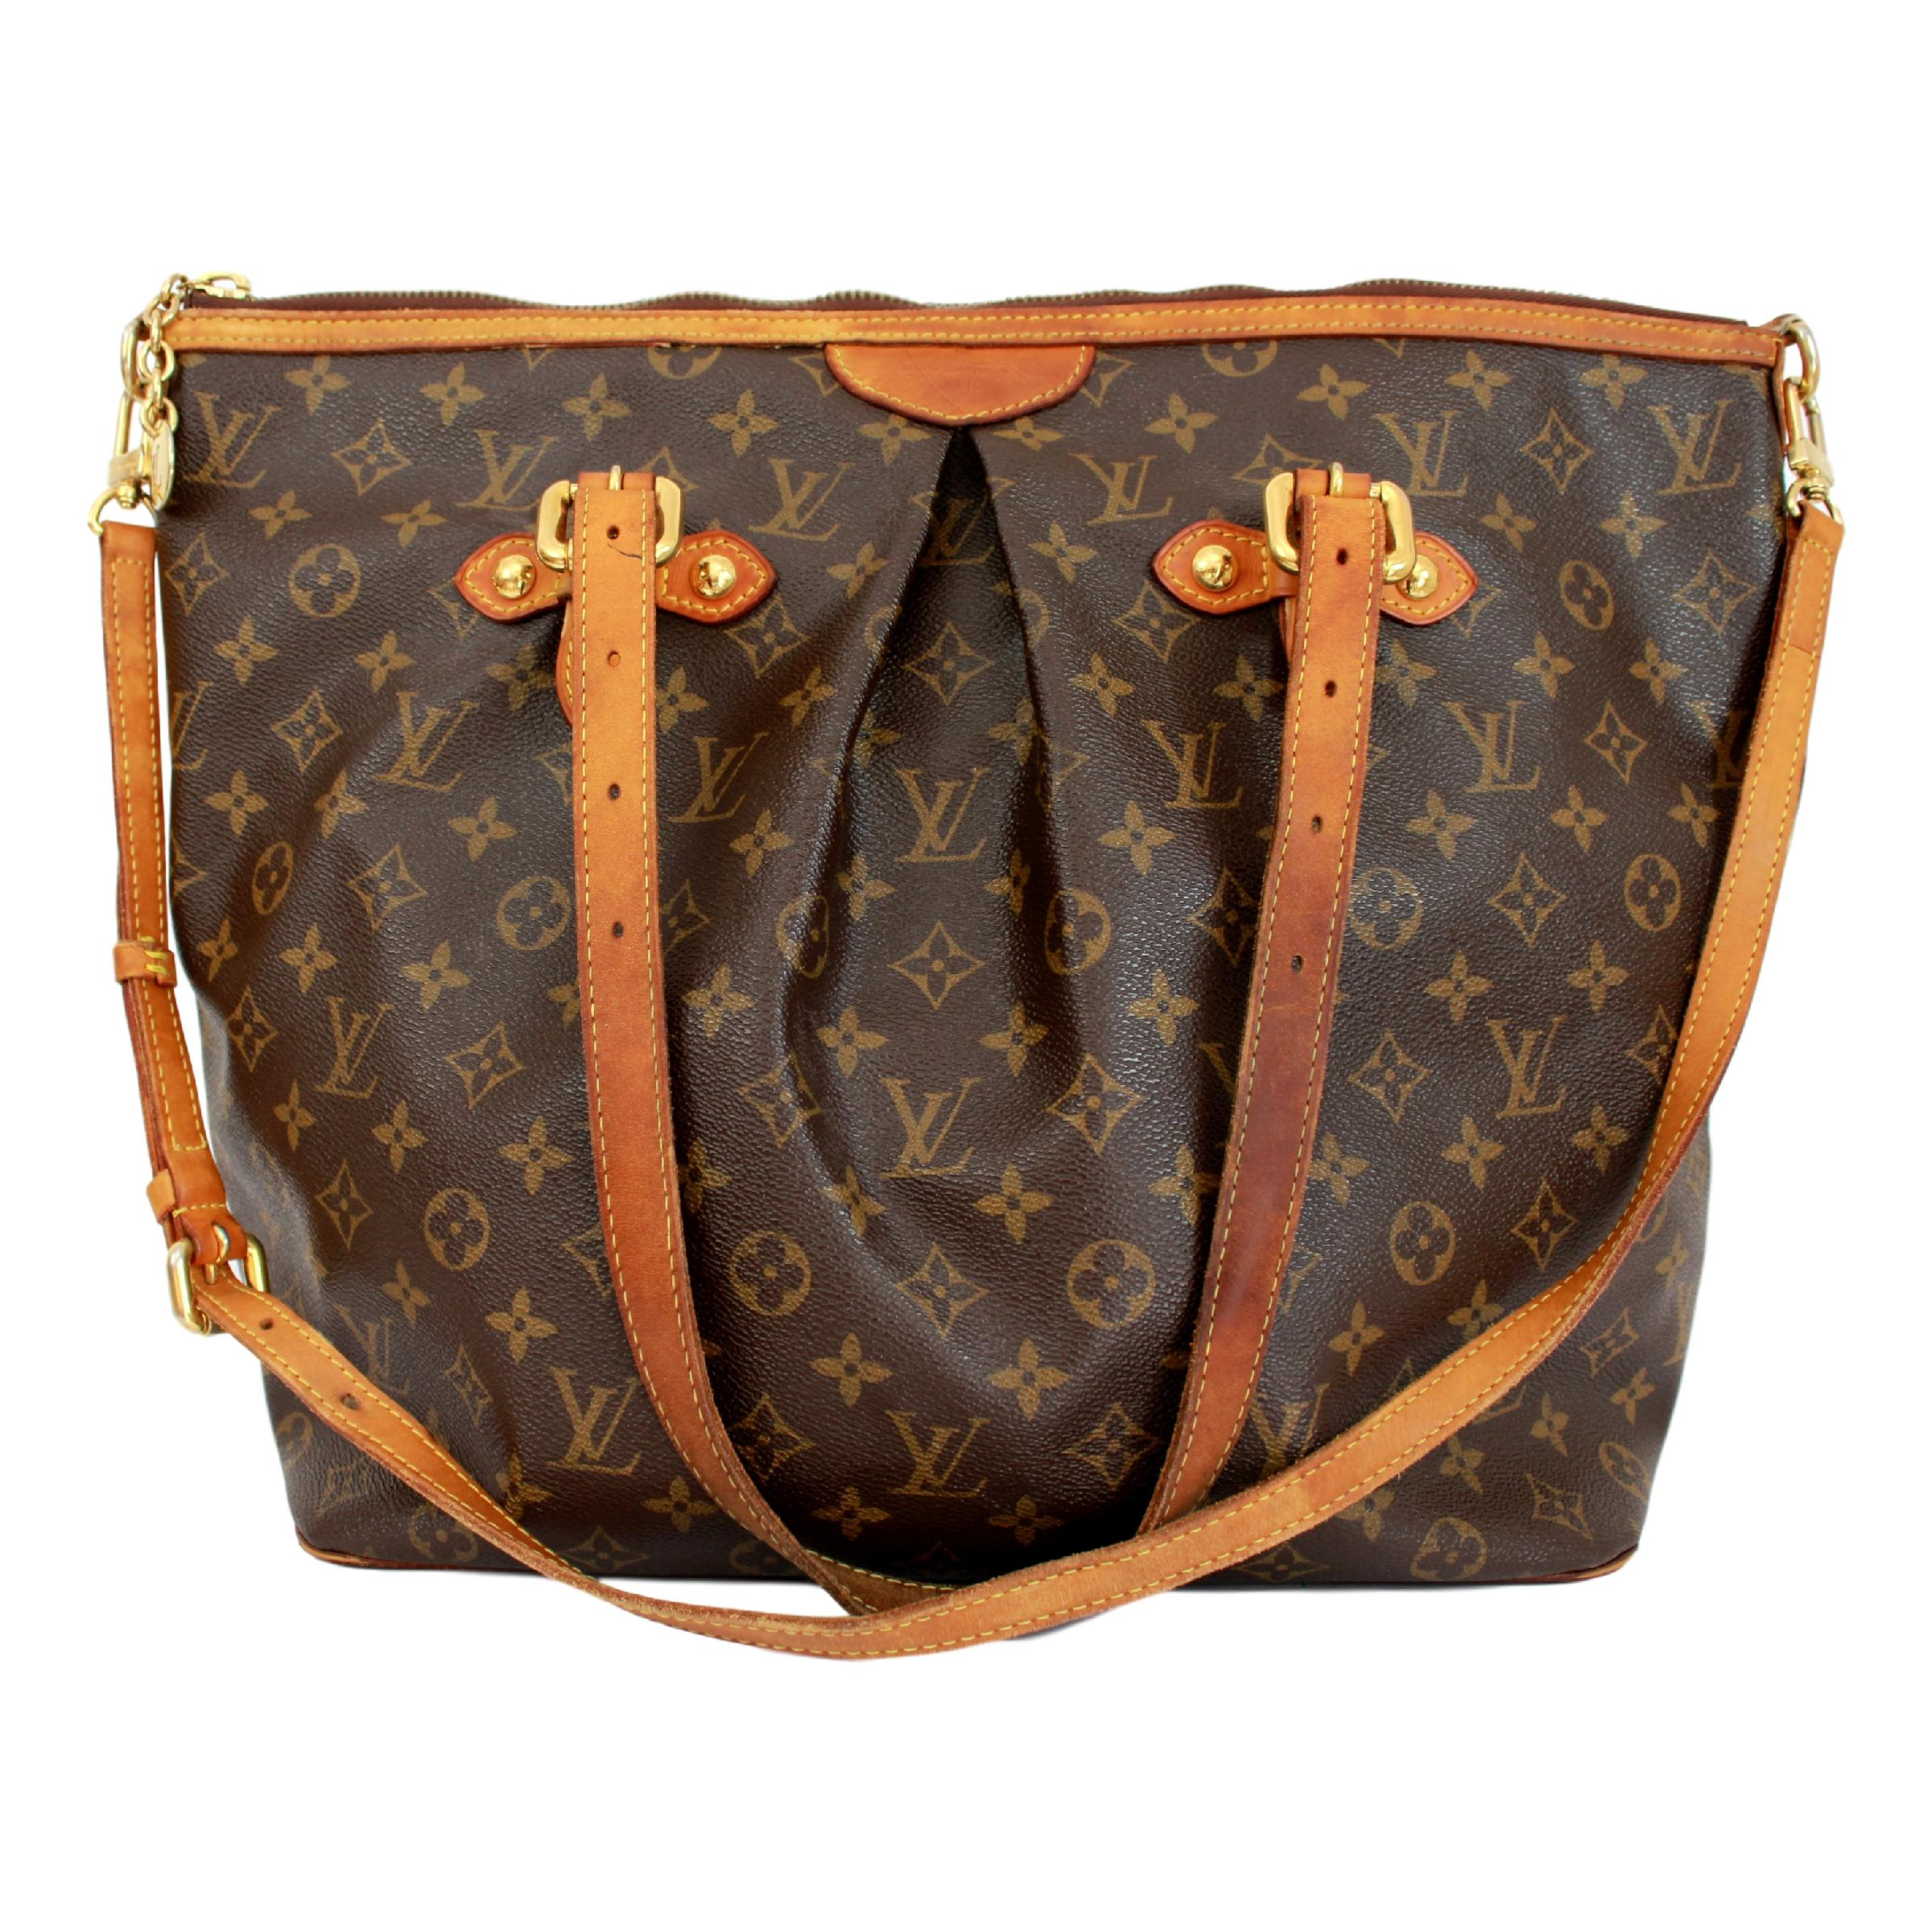 9be62c7fd0ad Louis Vuitton Palermo GM Monogram Shoulder Bag Brown For Sale at 1stdibs